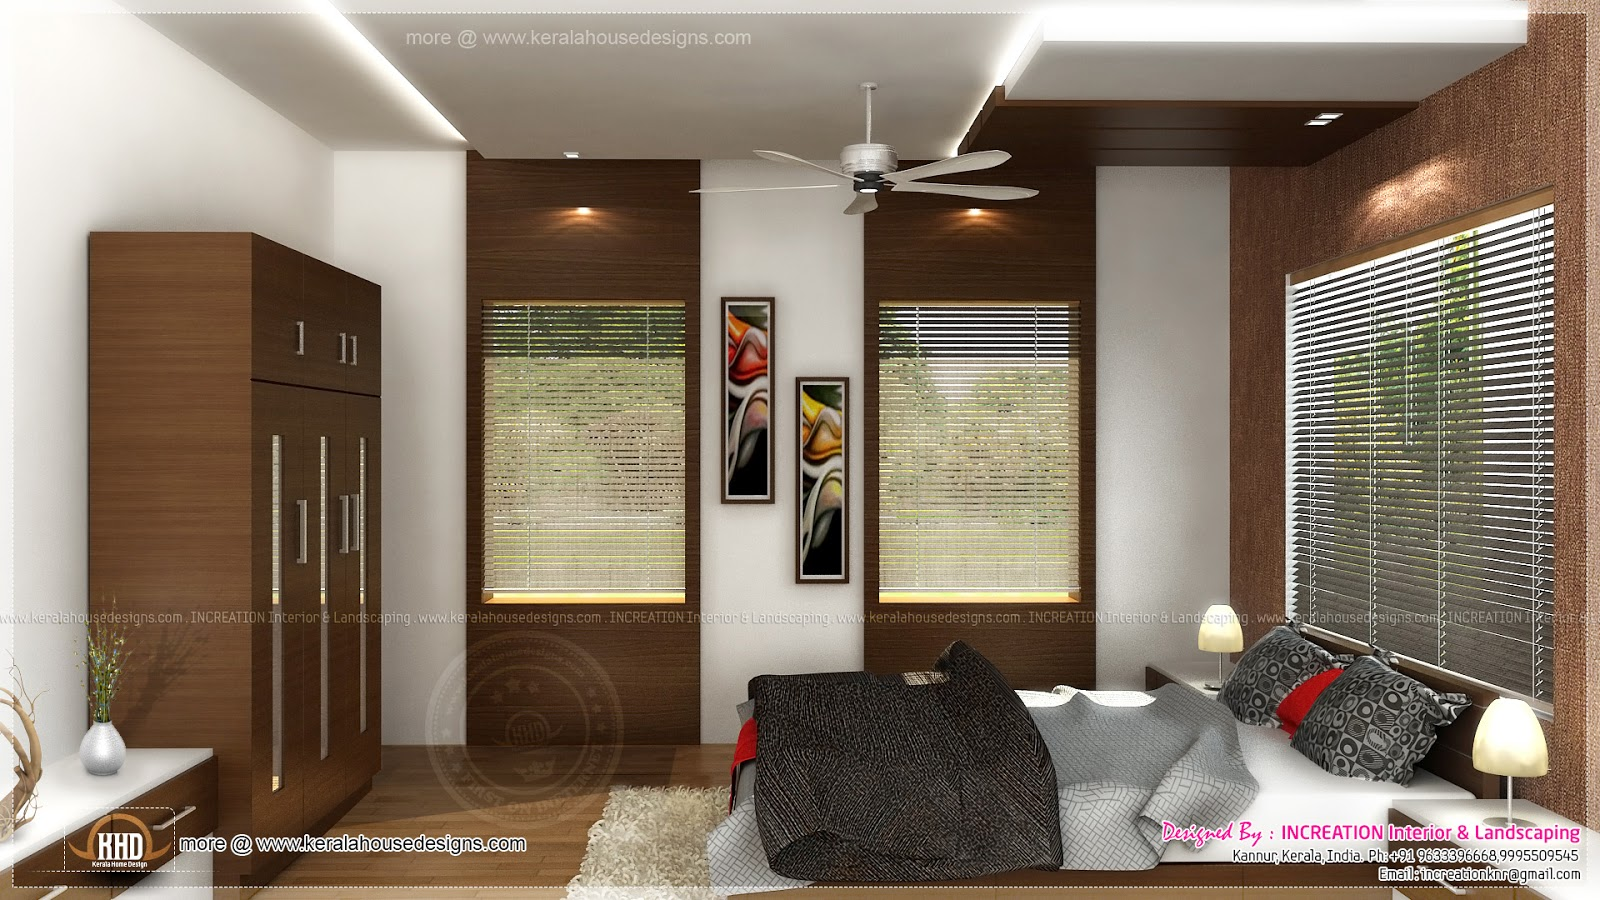 Decor Interior Design Inc Model elegant home interiorscomfortable elegant home interior design